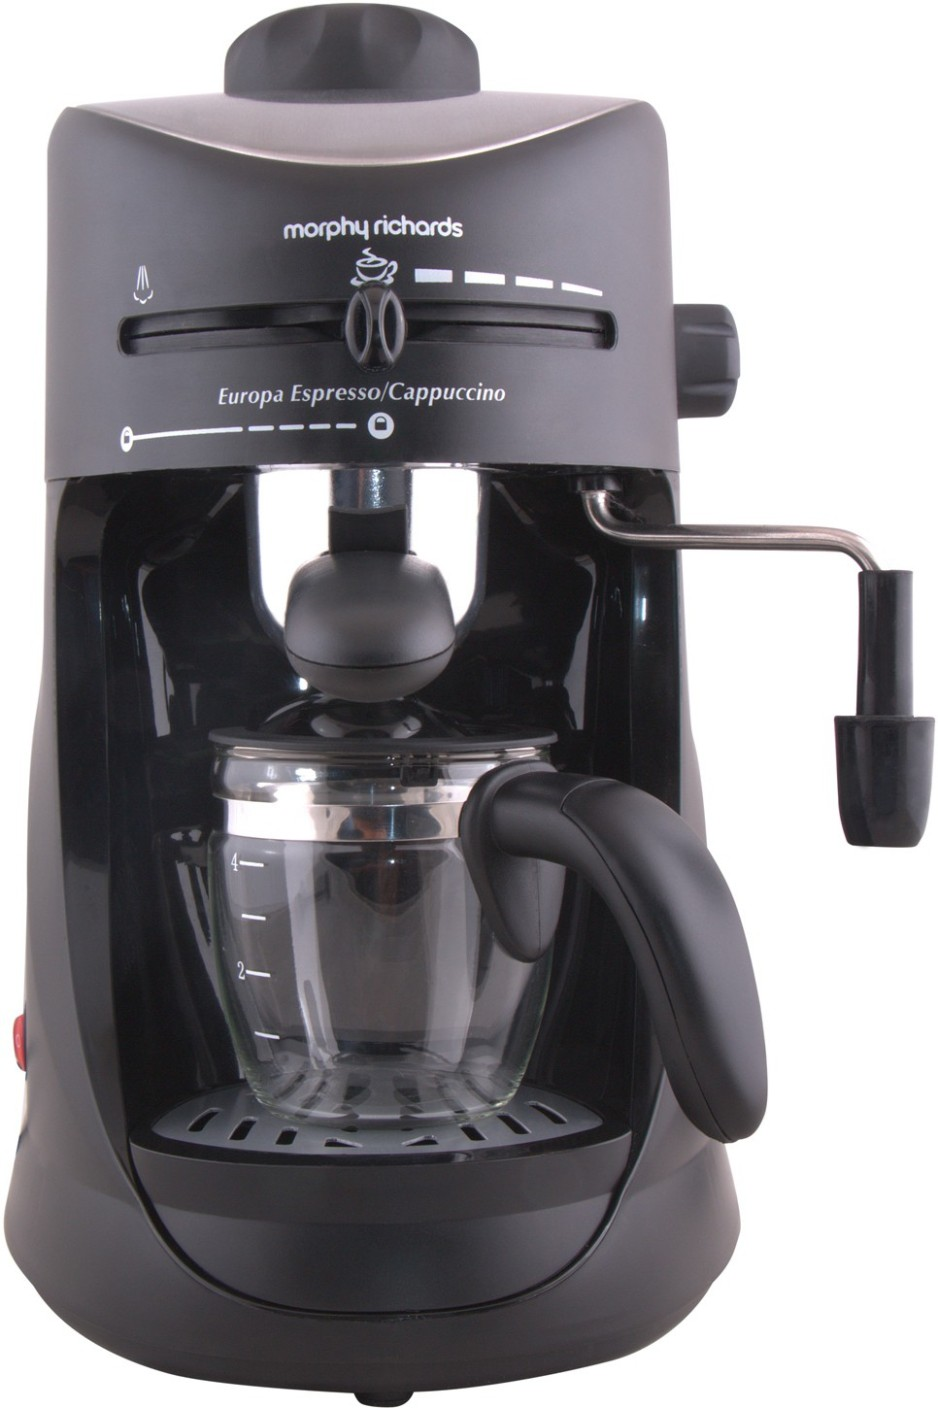 Morphy Richards Europa Espresso / Cappuccino 4 Cups Coffee Maker Price in India - Buy Morphy ...